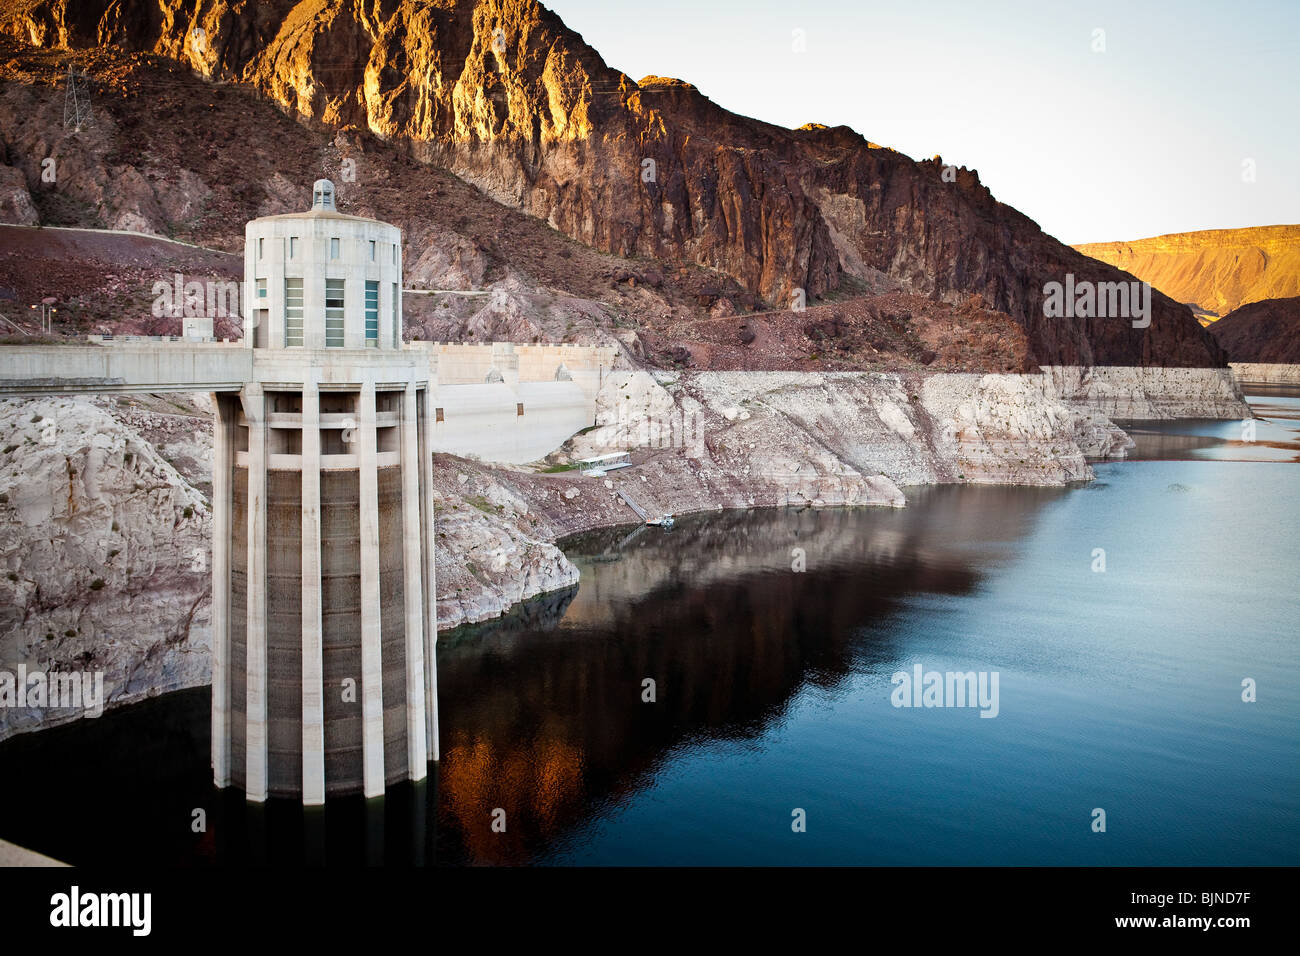 Marks along the canyon walls of Lake Mead at the Hoover Dam show the low water level due to over use of water resources Stock Photo